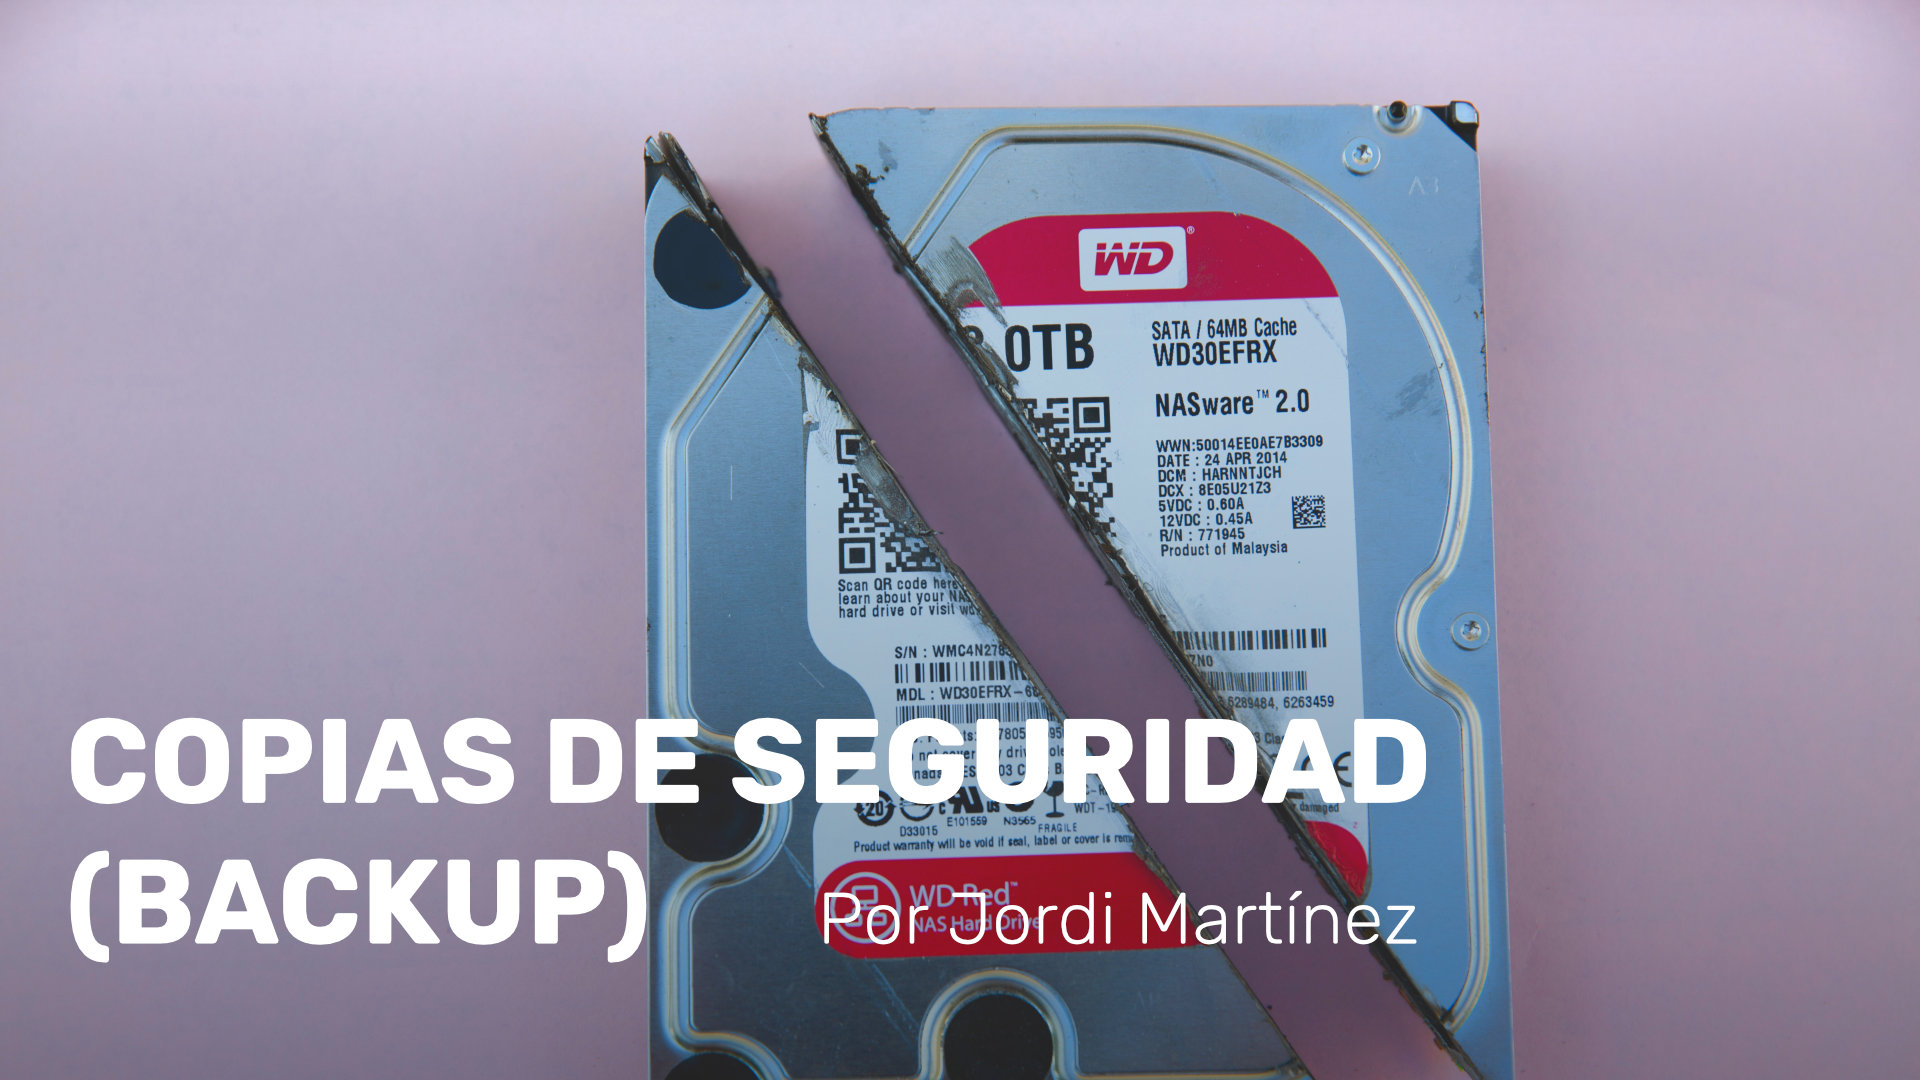 Copias de seguridad (Backup)